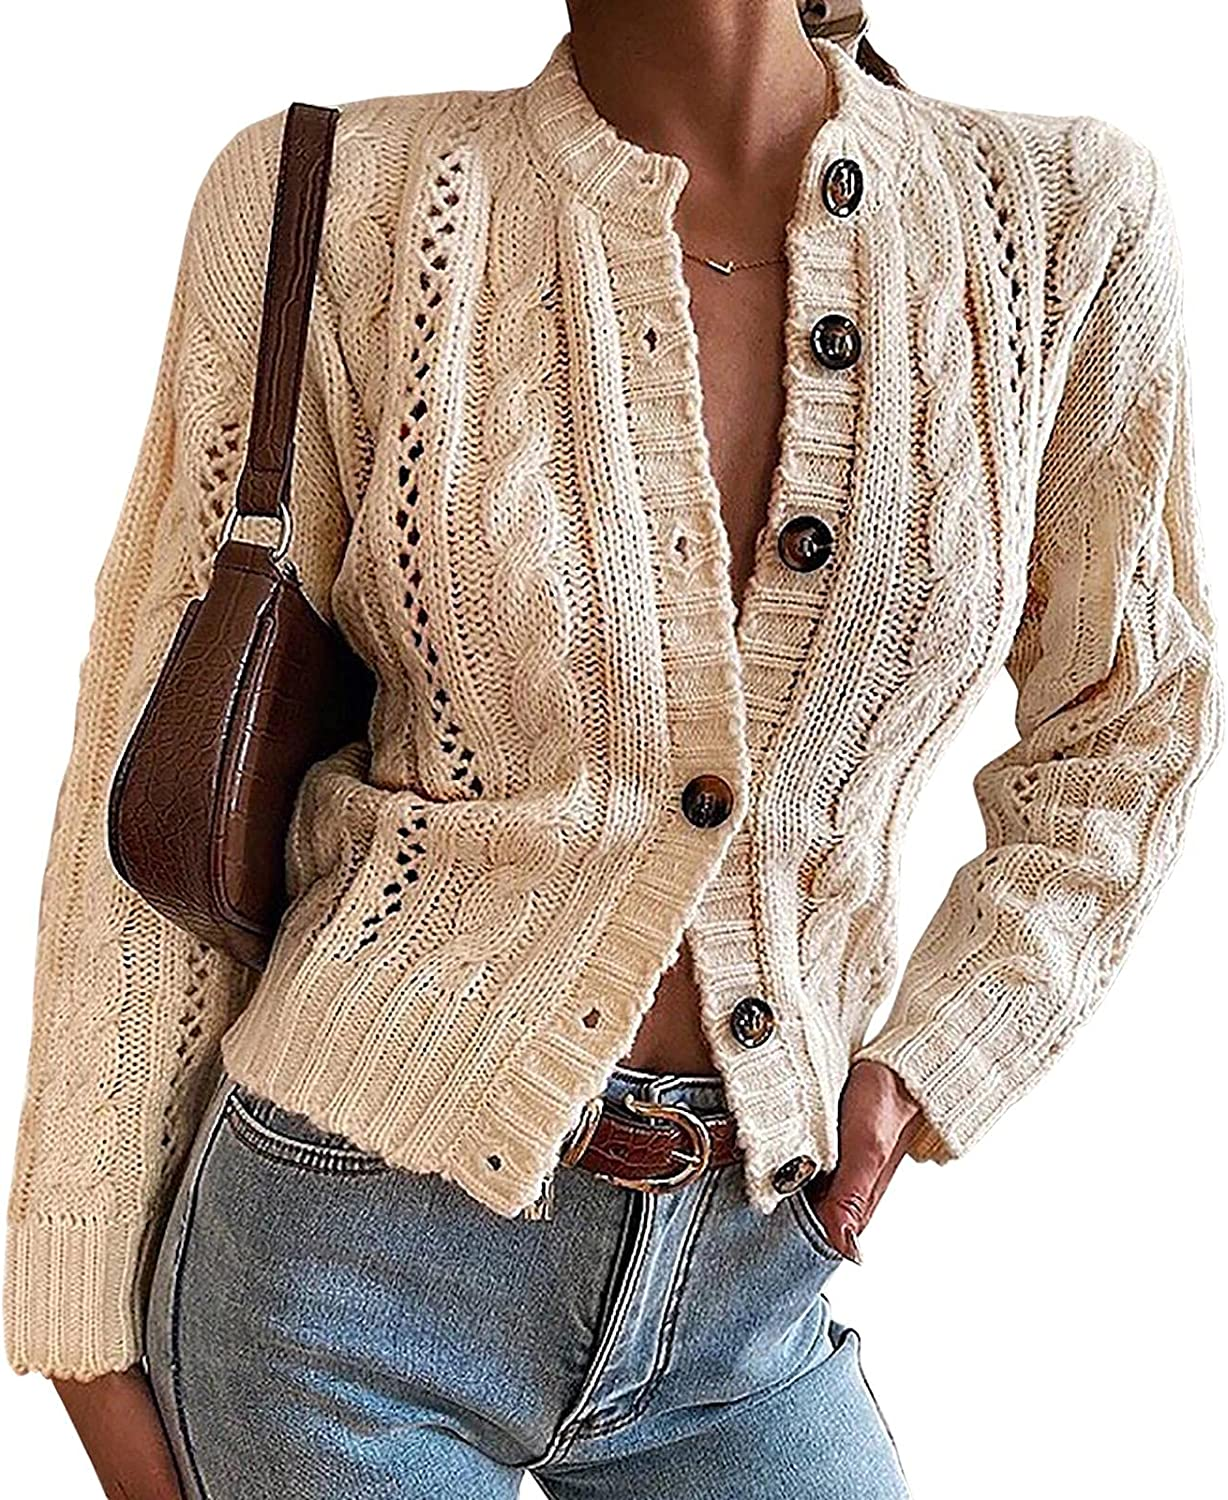 Dellytop Womens Cable Knit Button Down Cropped Cardigan Sweaters Boho Open Front Long Sleeve Crochet Cardigans Outerwear